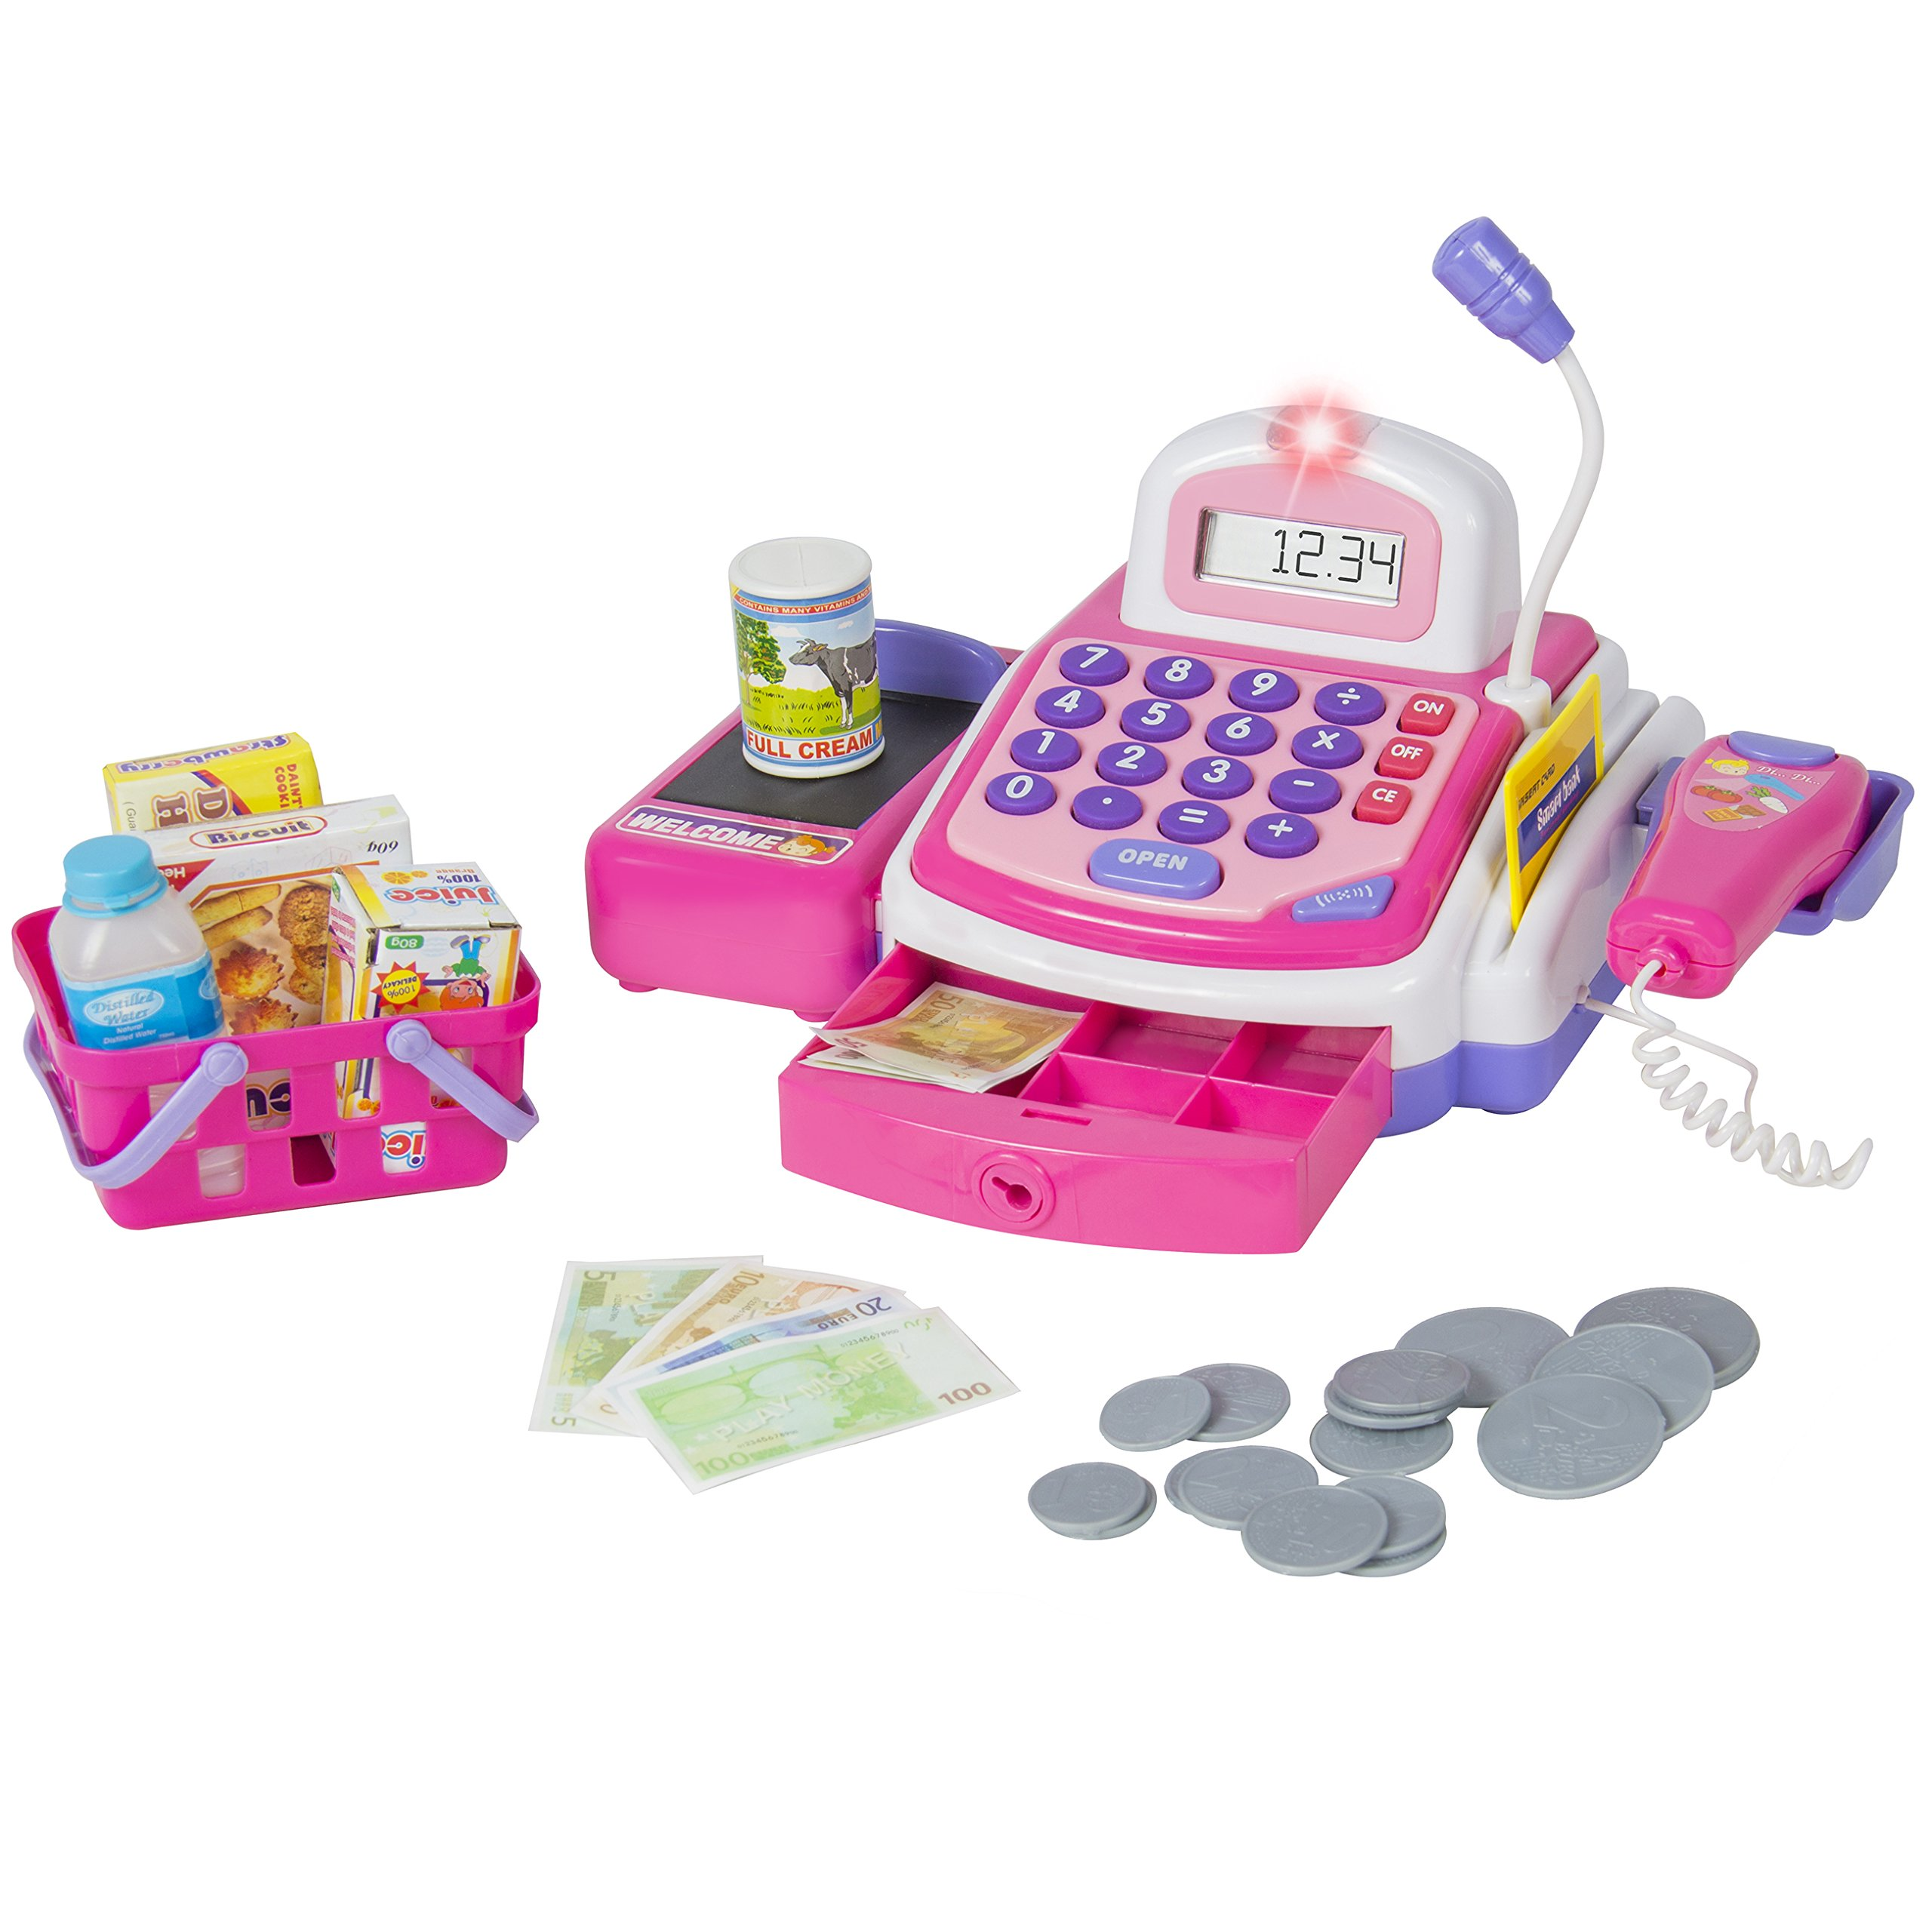 Best Choice Products Pretend Play Electronic Cash Register Toy w/ Realistic Actions and Sounds - Pink